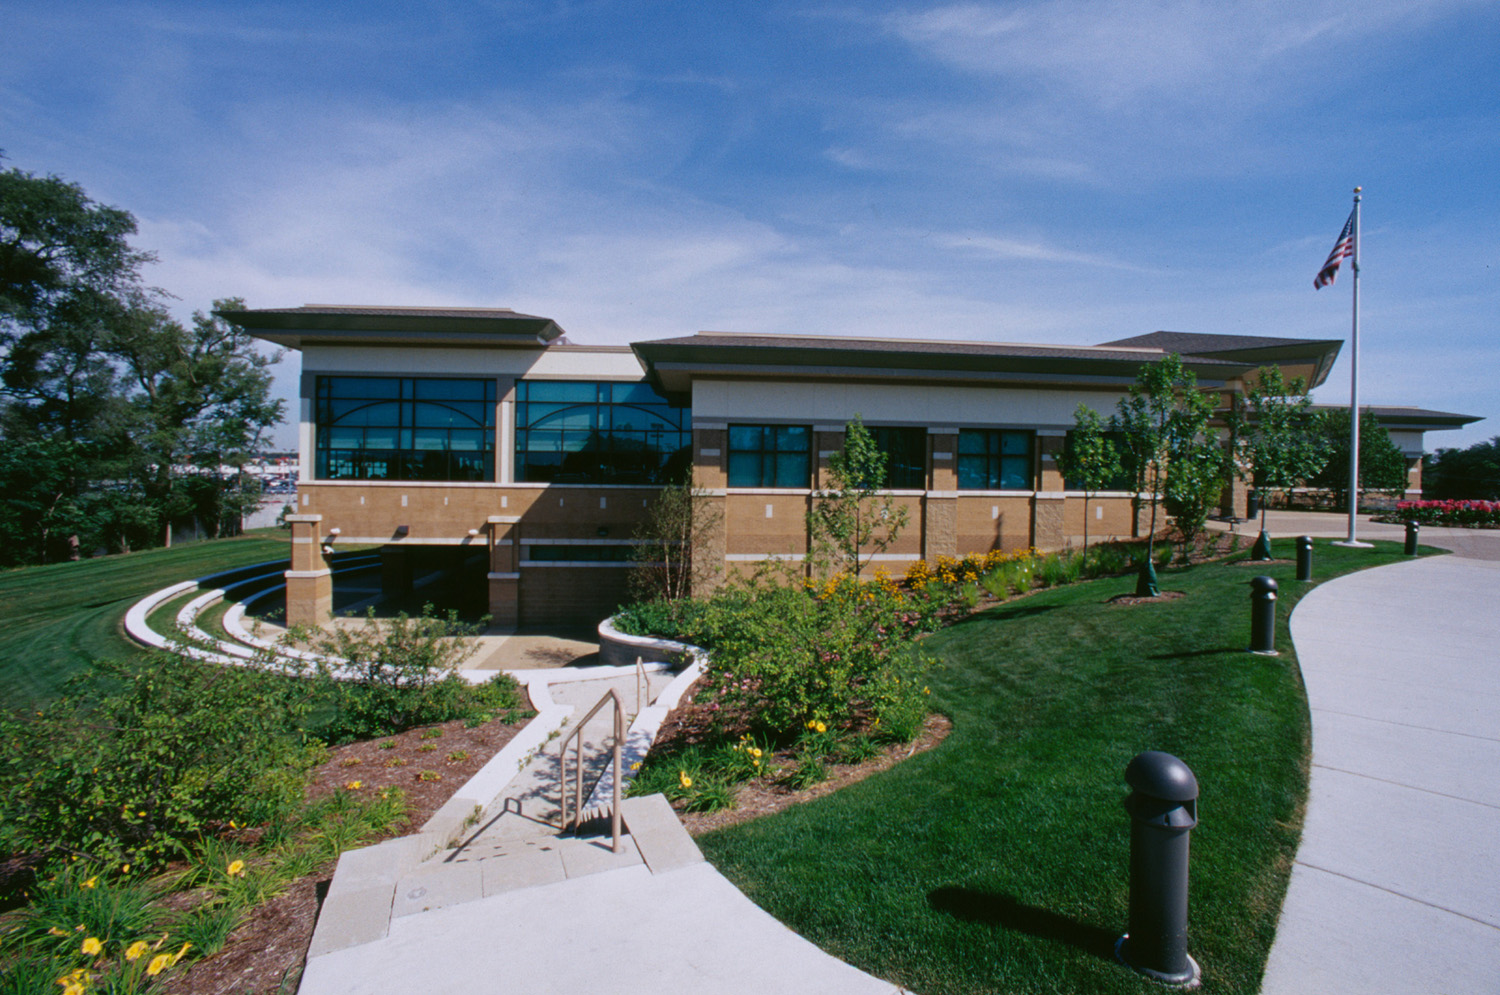 2000-046-36 Downers Grove Rec Center ext side.jpg